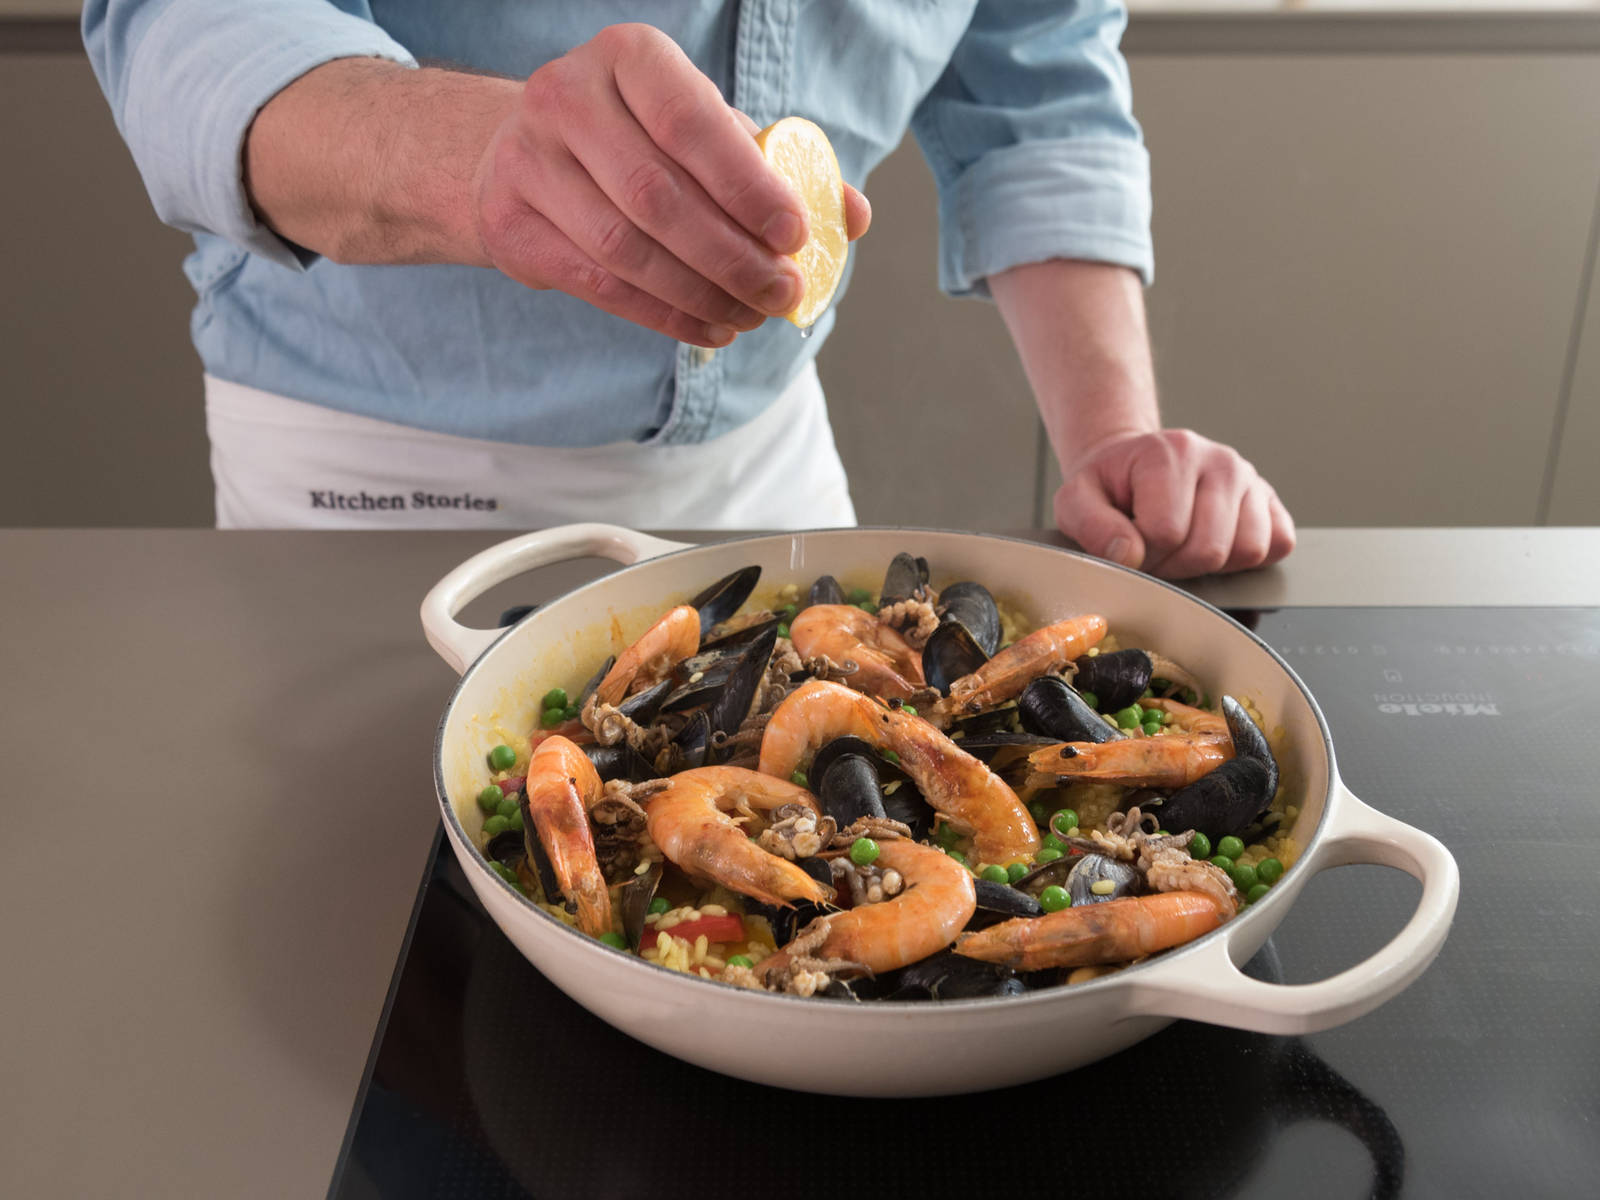 Cover with a kitchen towel and let rest for approx. 5 min. Afterwards, sort out unopened mussels and discard. Season with salt, pepper, and lemon juice and serve with basil. Enjoy!